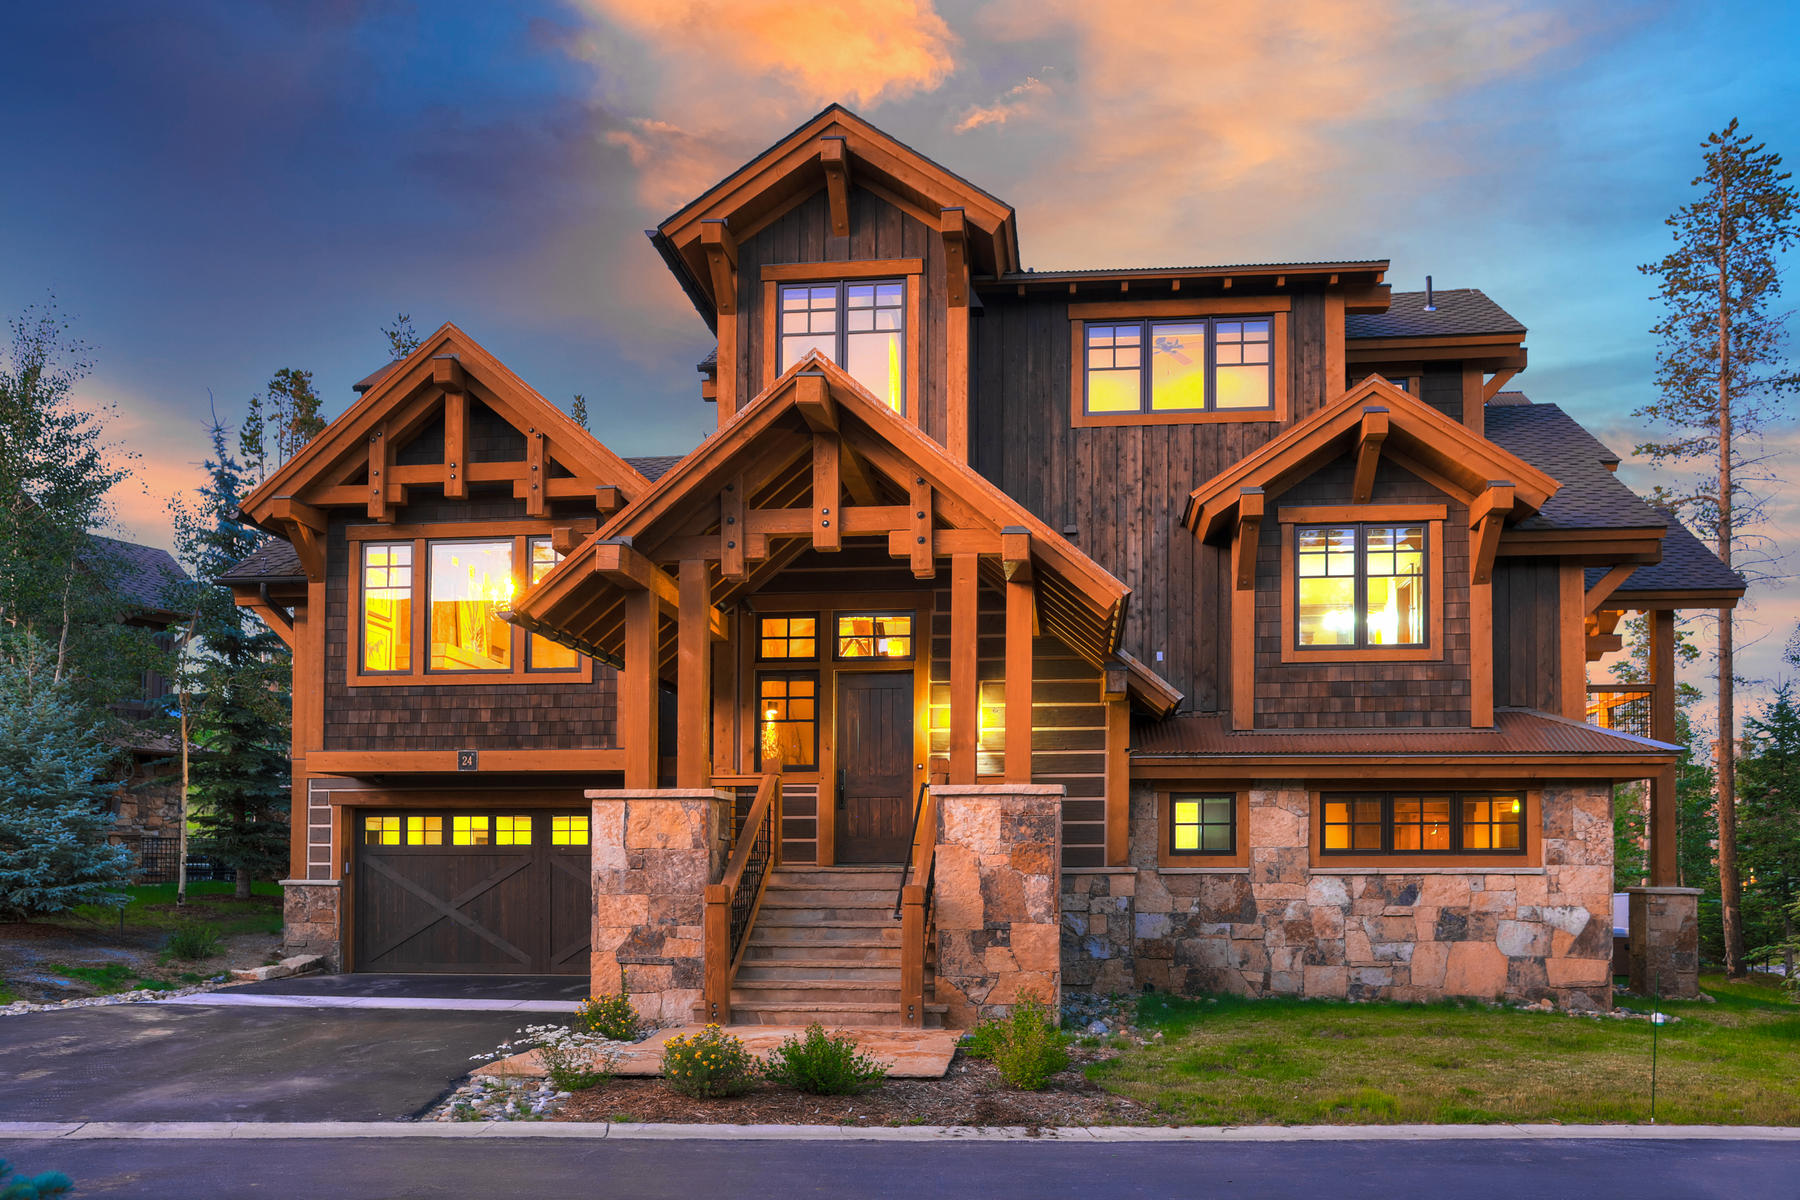 Single Family Homes for Sale at Mountain Getaway in Shock Hill 24 Regent Drive Breckenridge, Colorado 80424 United States